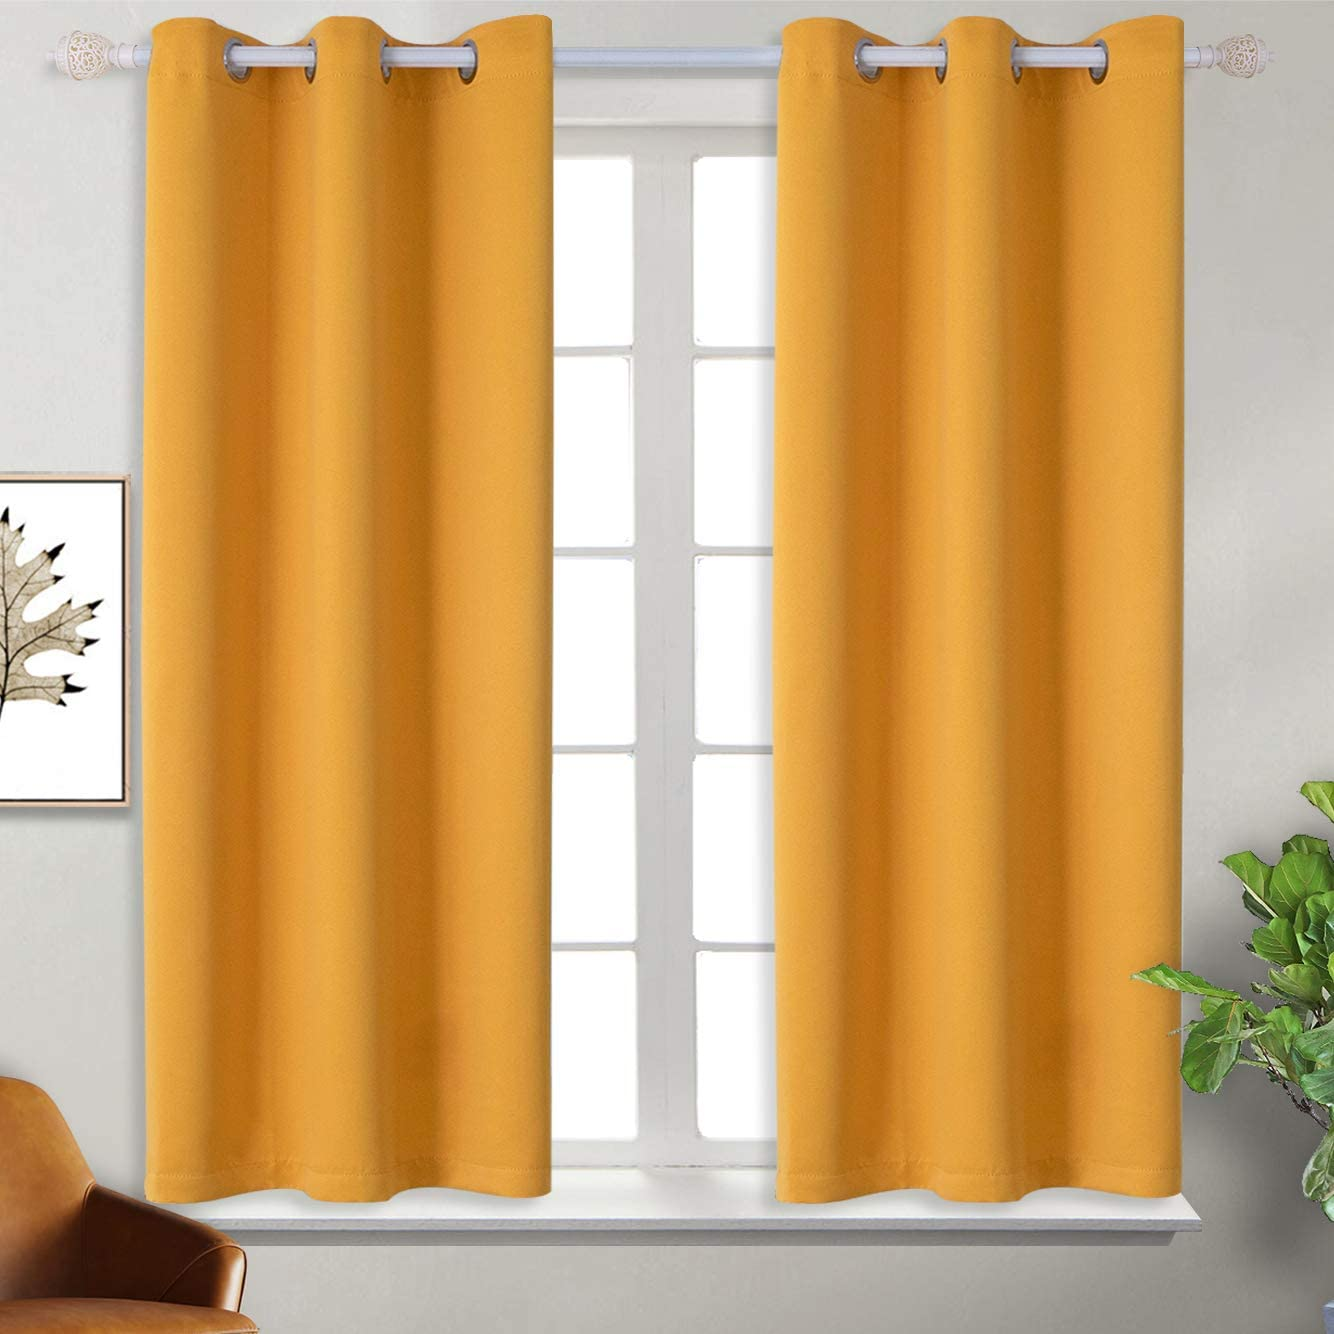 BGment Blackout Curtains for Kids Bedroom - Grommet Thermal Insulated Room Darkening Curtains for Living Room, Set of 2 Panels (38 x 54 Inch, Mustard Yellow)